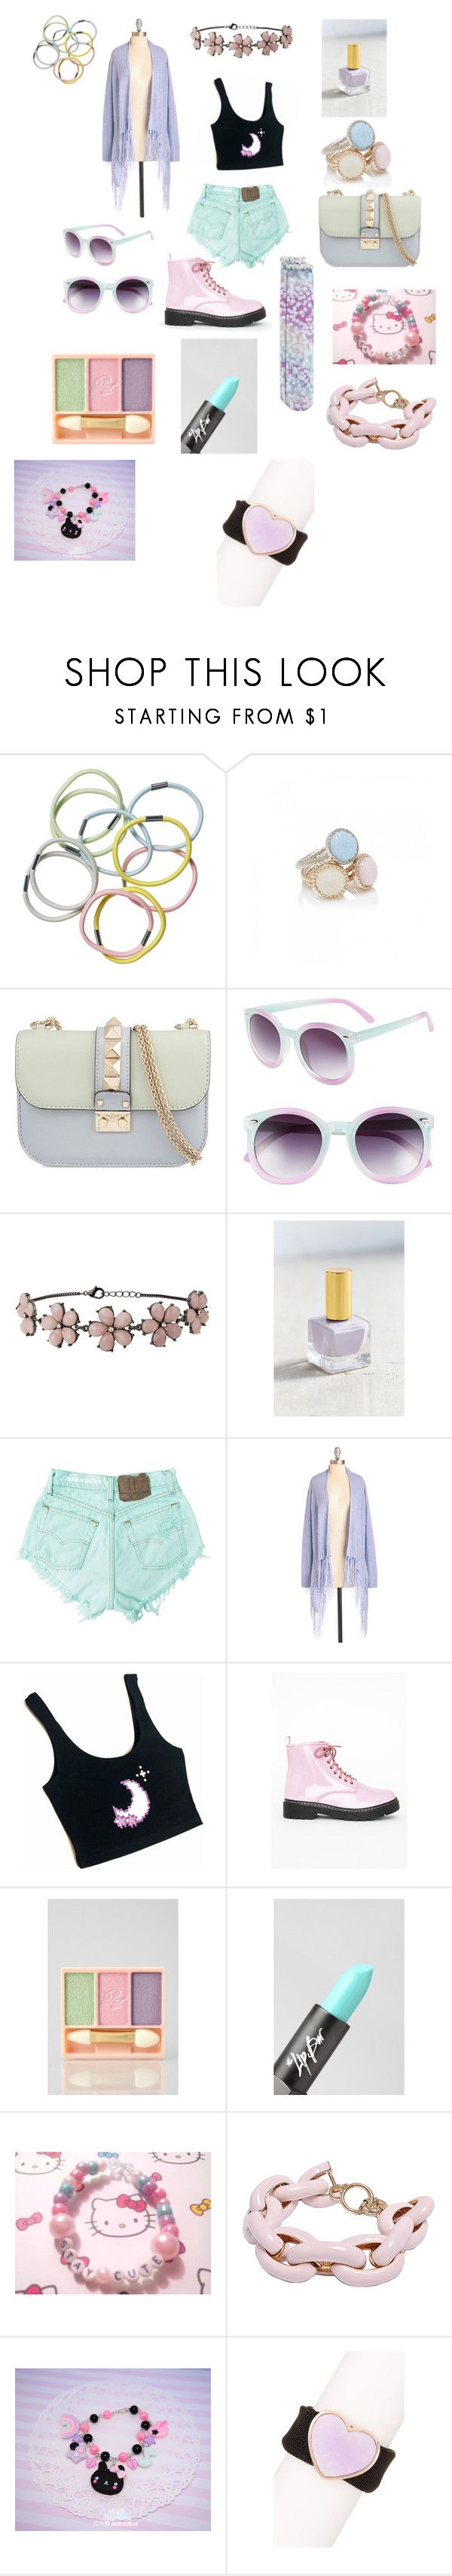 """""""Pastel"""" by justahooliganwithissues ❤ liked on Polyvore featuring Monki, Forever New, Valentino, Tildon, Miss Selfridge, Urban Outfitters, Levi's, Missguided, Paul & Joe and The Lip Bar"""